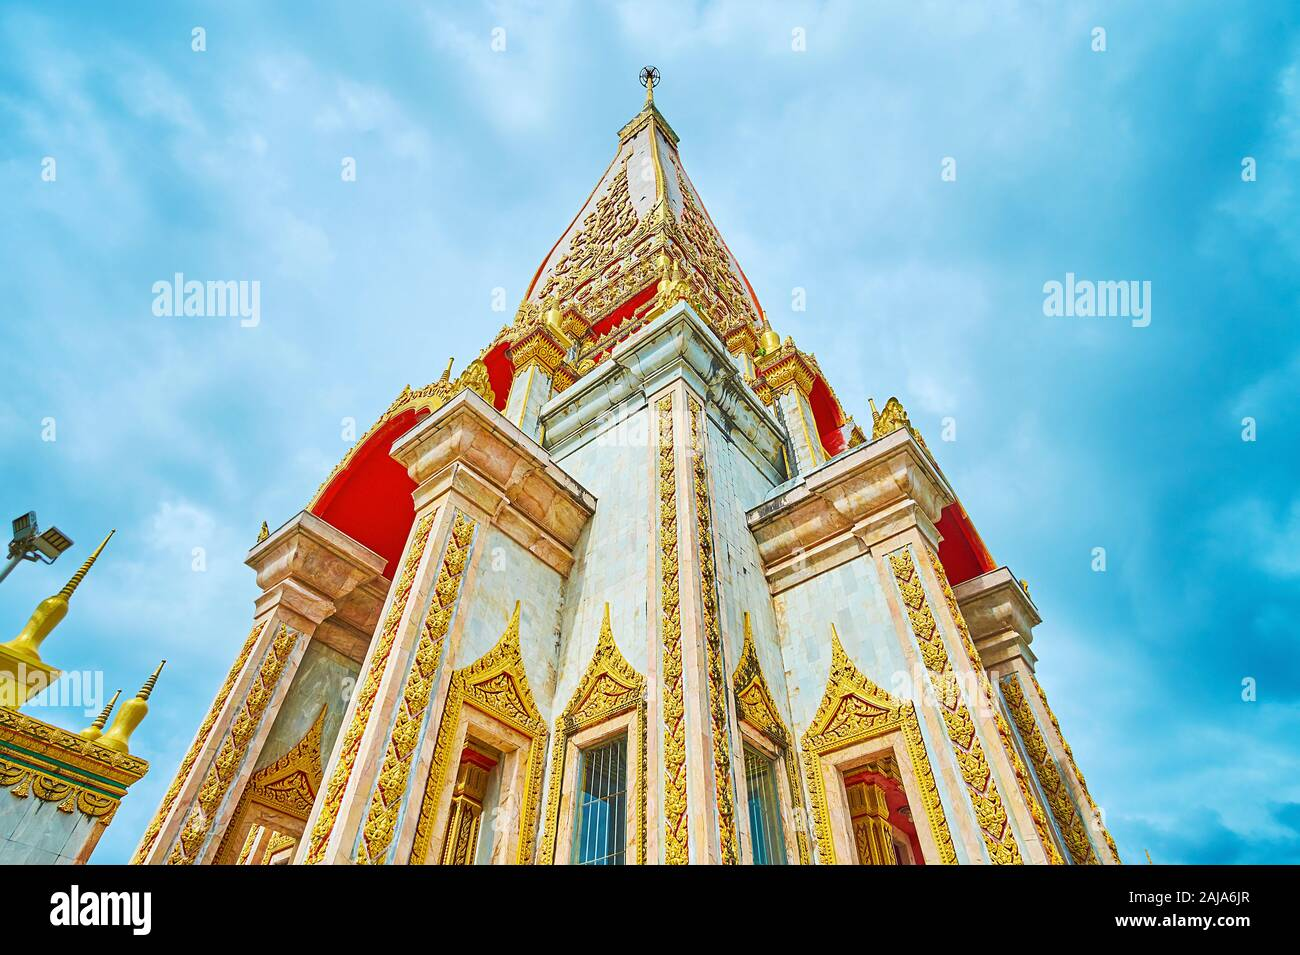 The building of Wat Chalong Pagoda, also named Phra Mahathat Chedi Phra Jom Thai Baramee Prakat and located in Chalong, Phuket, Thailand Stock Photo